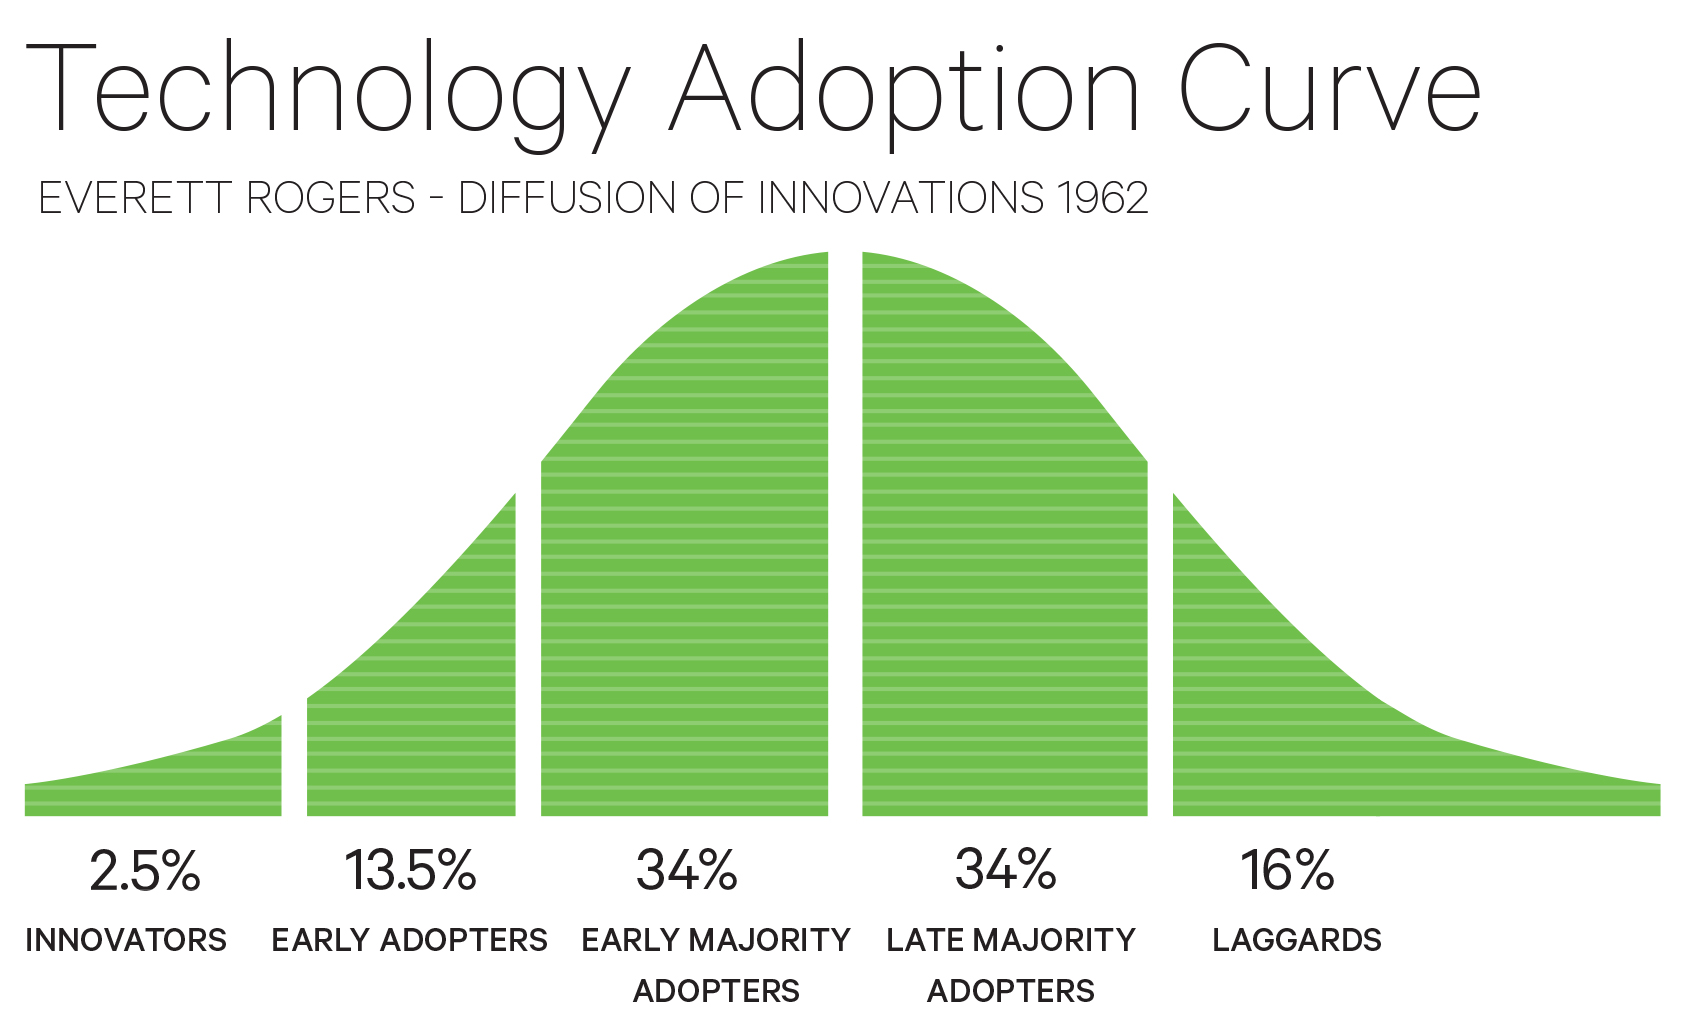 new surgical technology adoption or diffusion